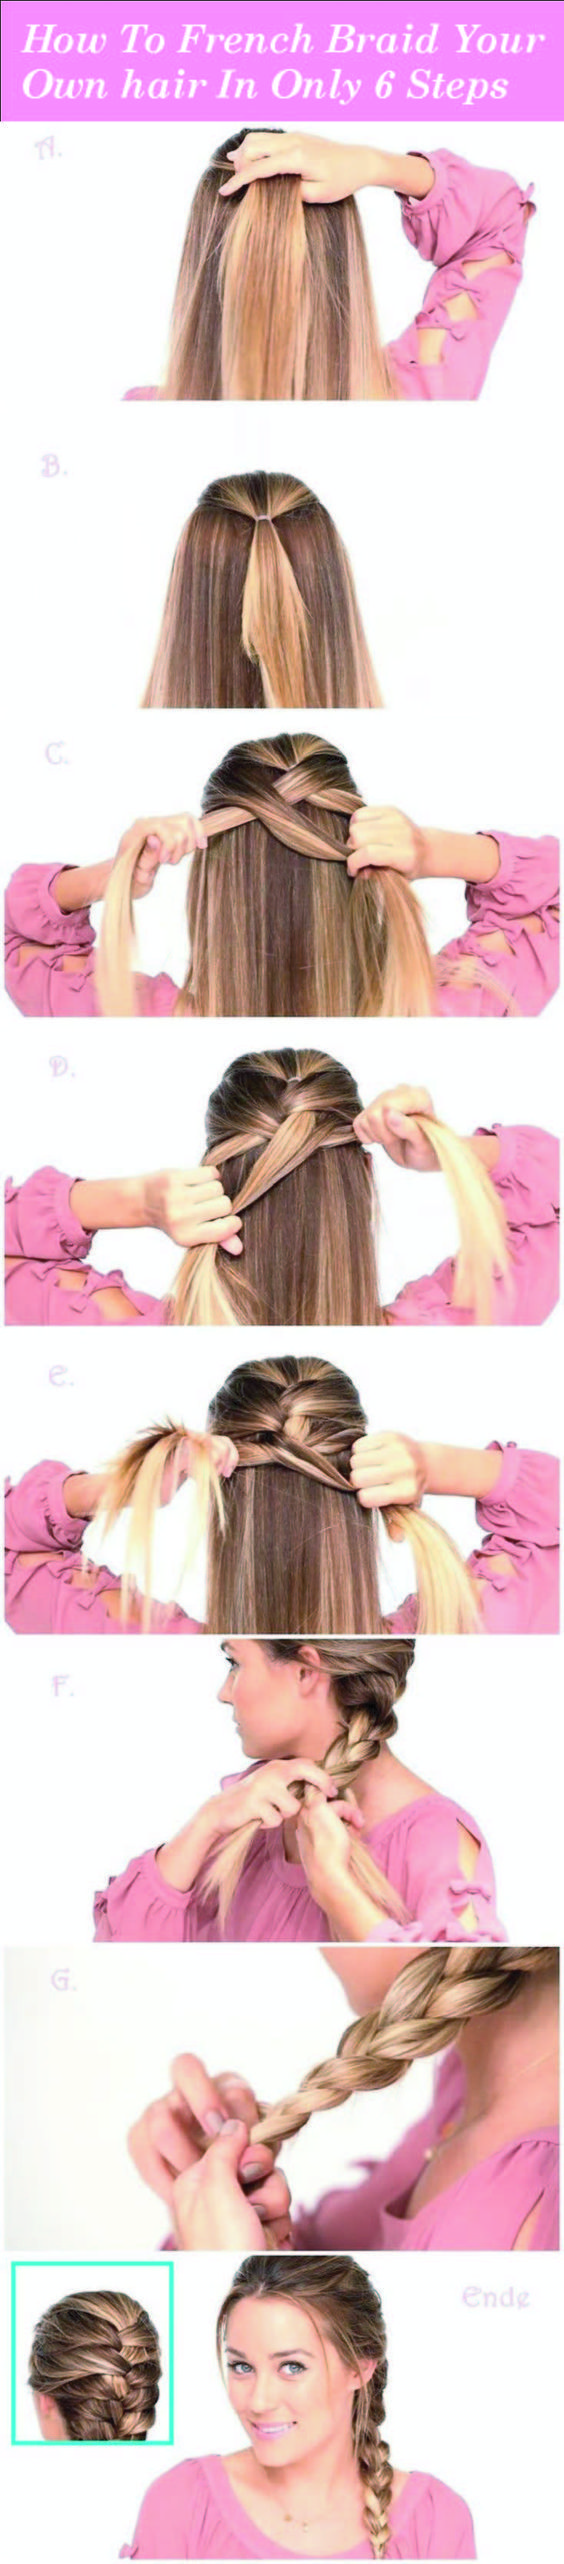 Fancy French braids? Want  to know how to french braid your hair? French braids are very easy  to do on someone else's hair but can be tricky when an attempt to do on your  own because you won't be able to see anything, so it is a bit tricky. French braids tutorial, French braids step by step, French braids short hair, French braids black hair.